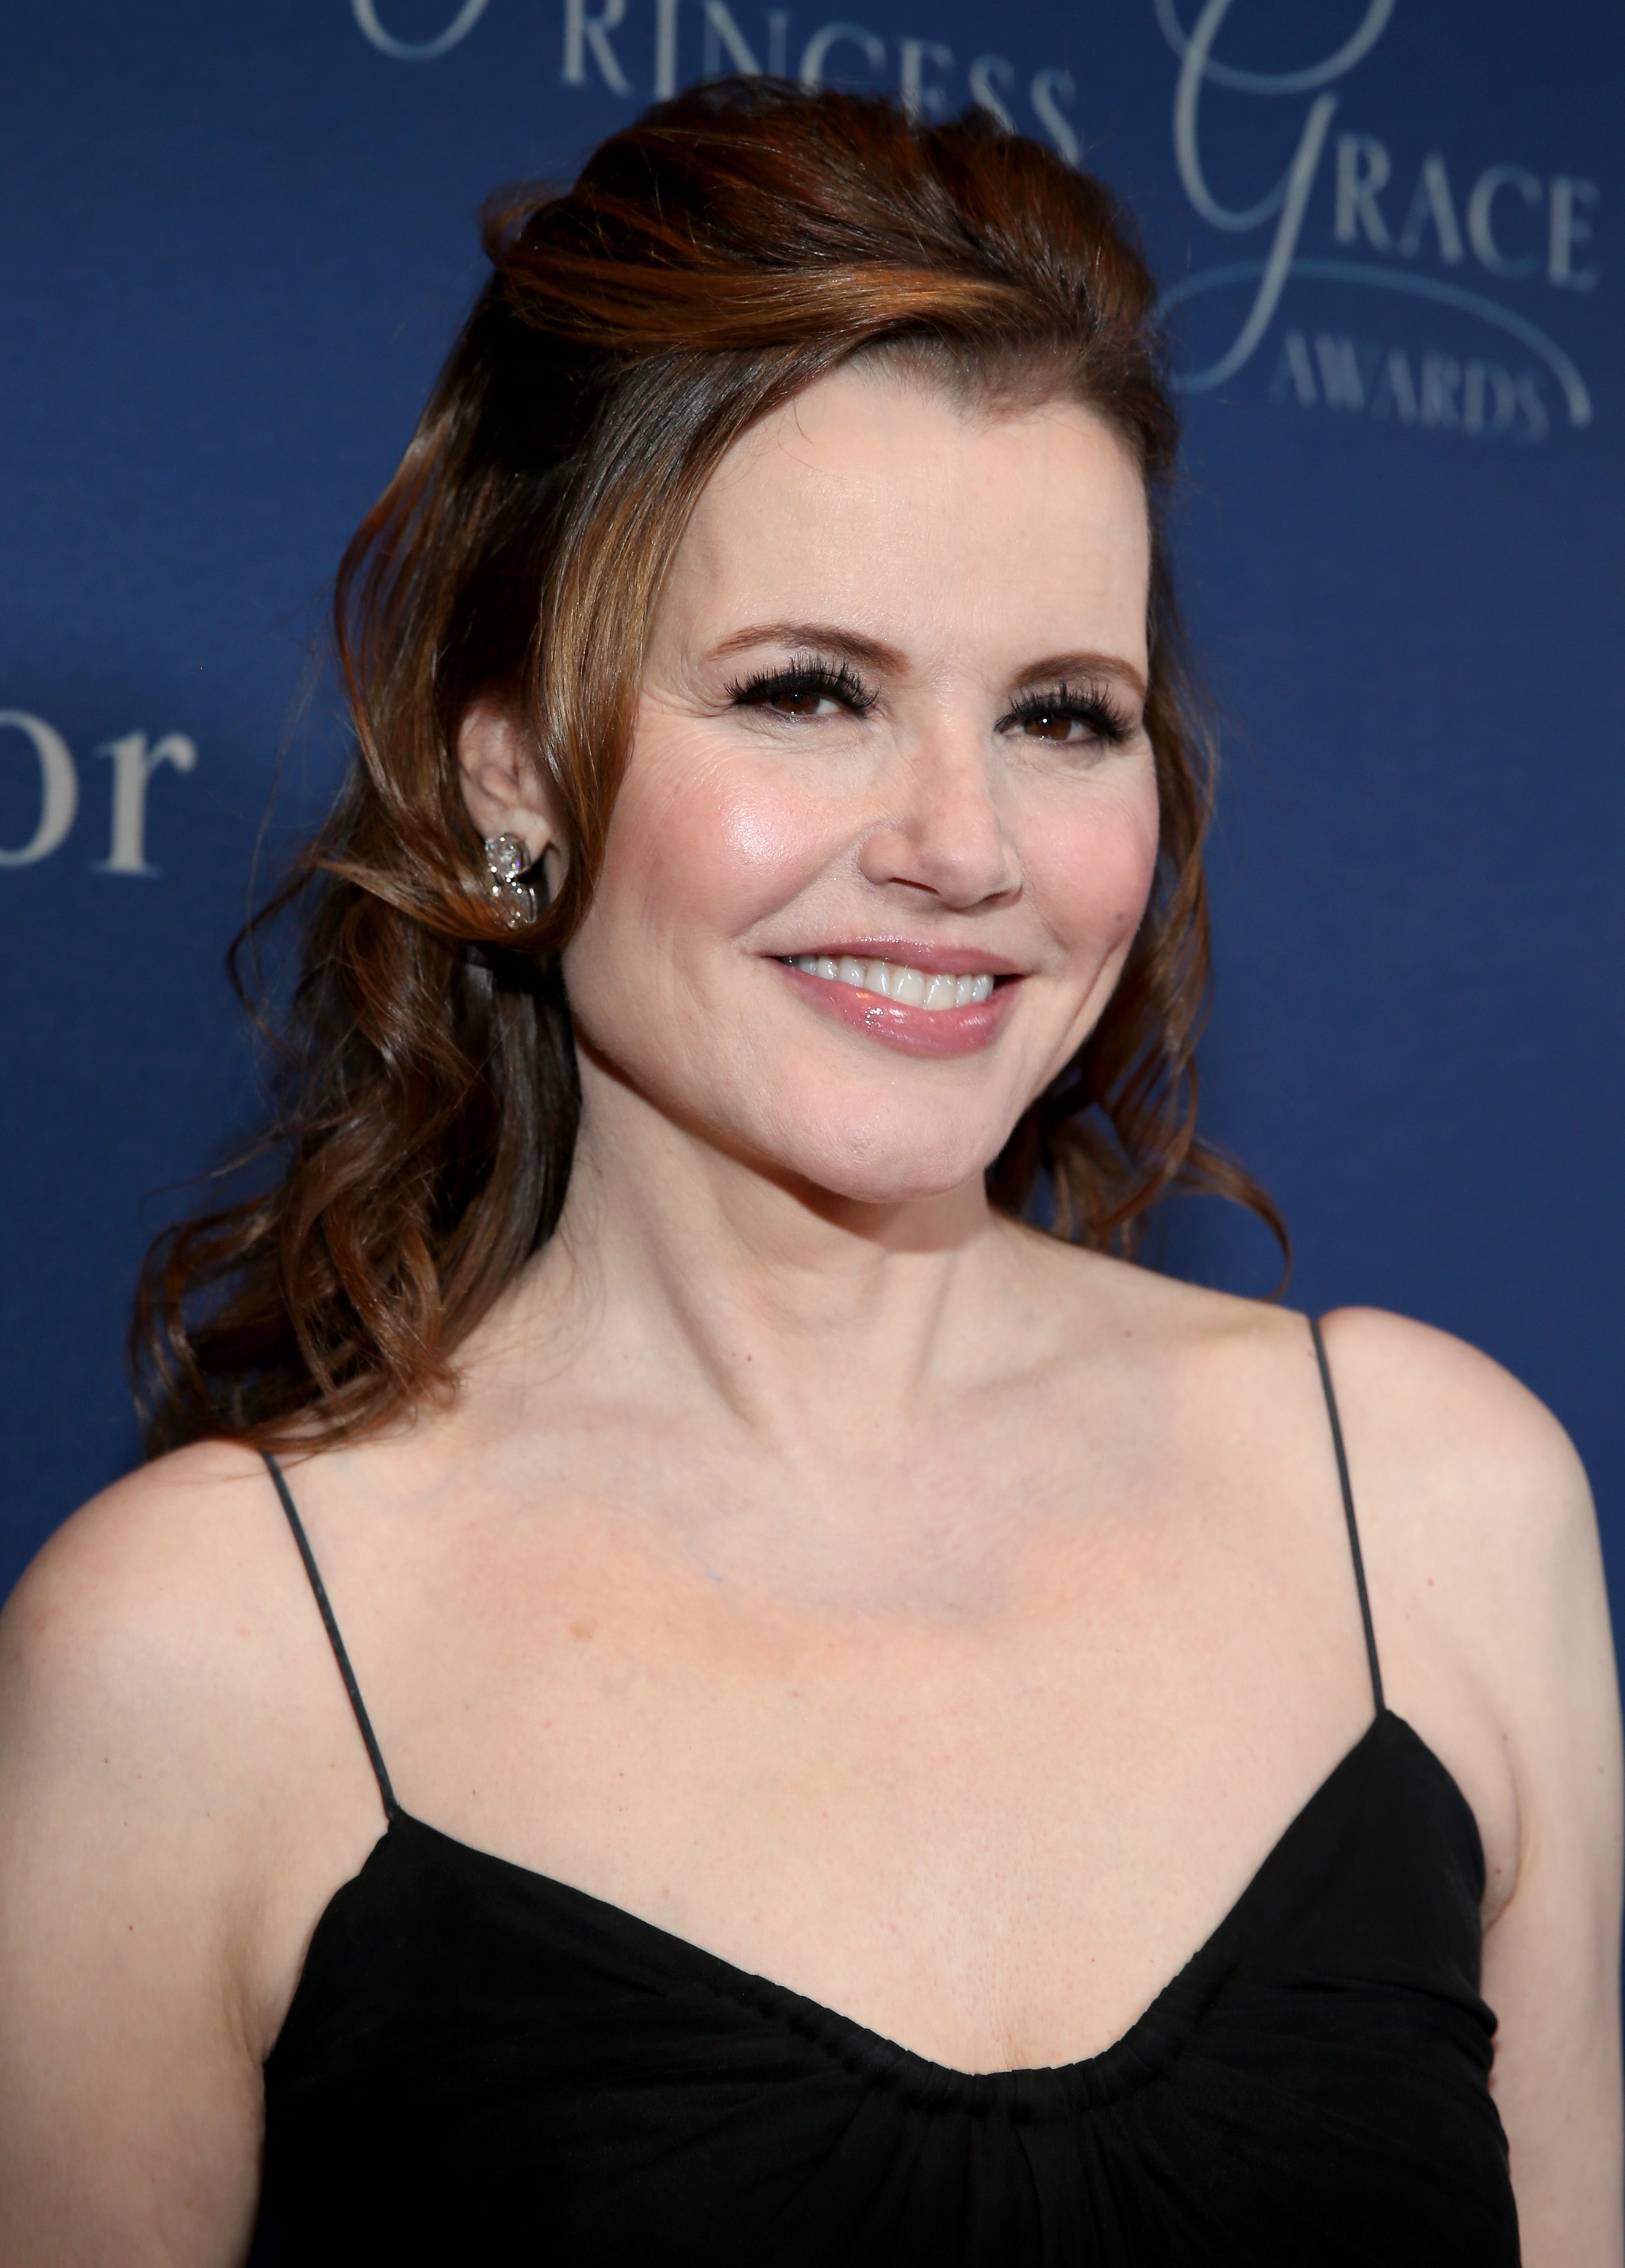 Geena Davis\' \'Grey\'s Anatomy\' Role Is Just the Latest in her Career ...